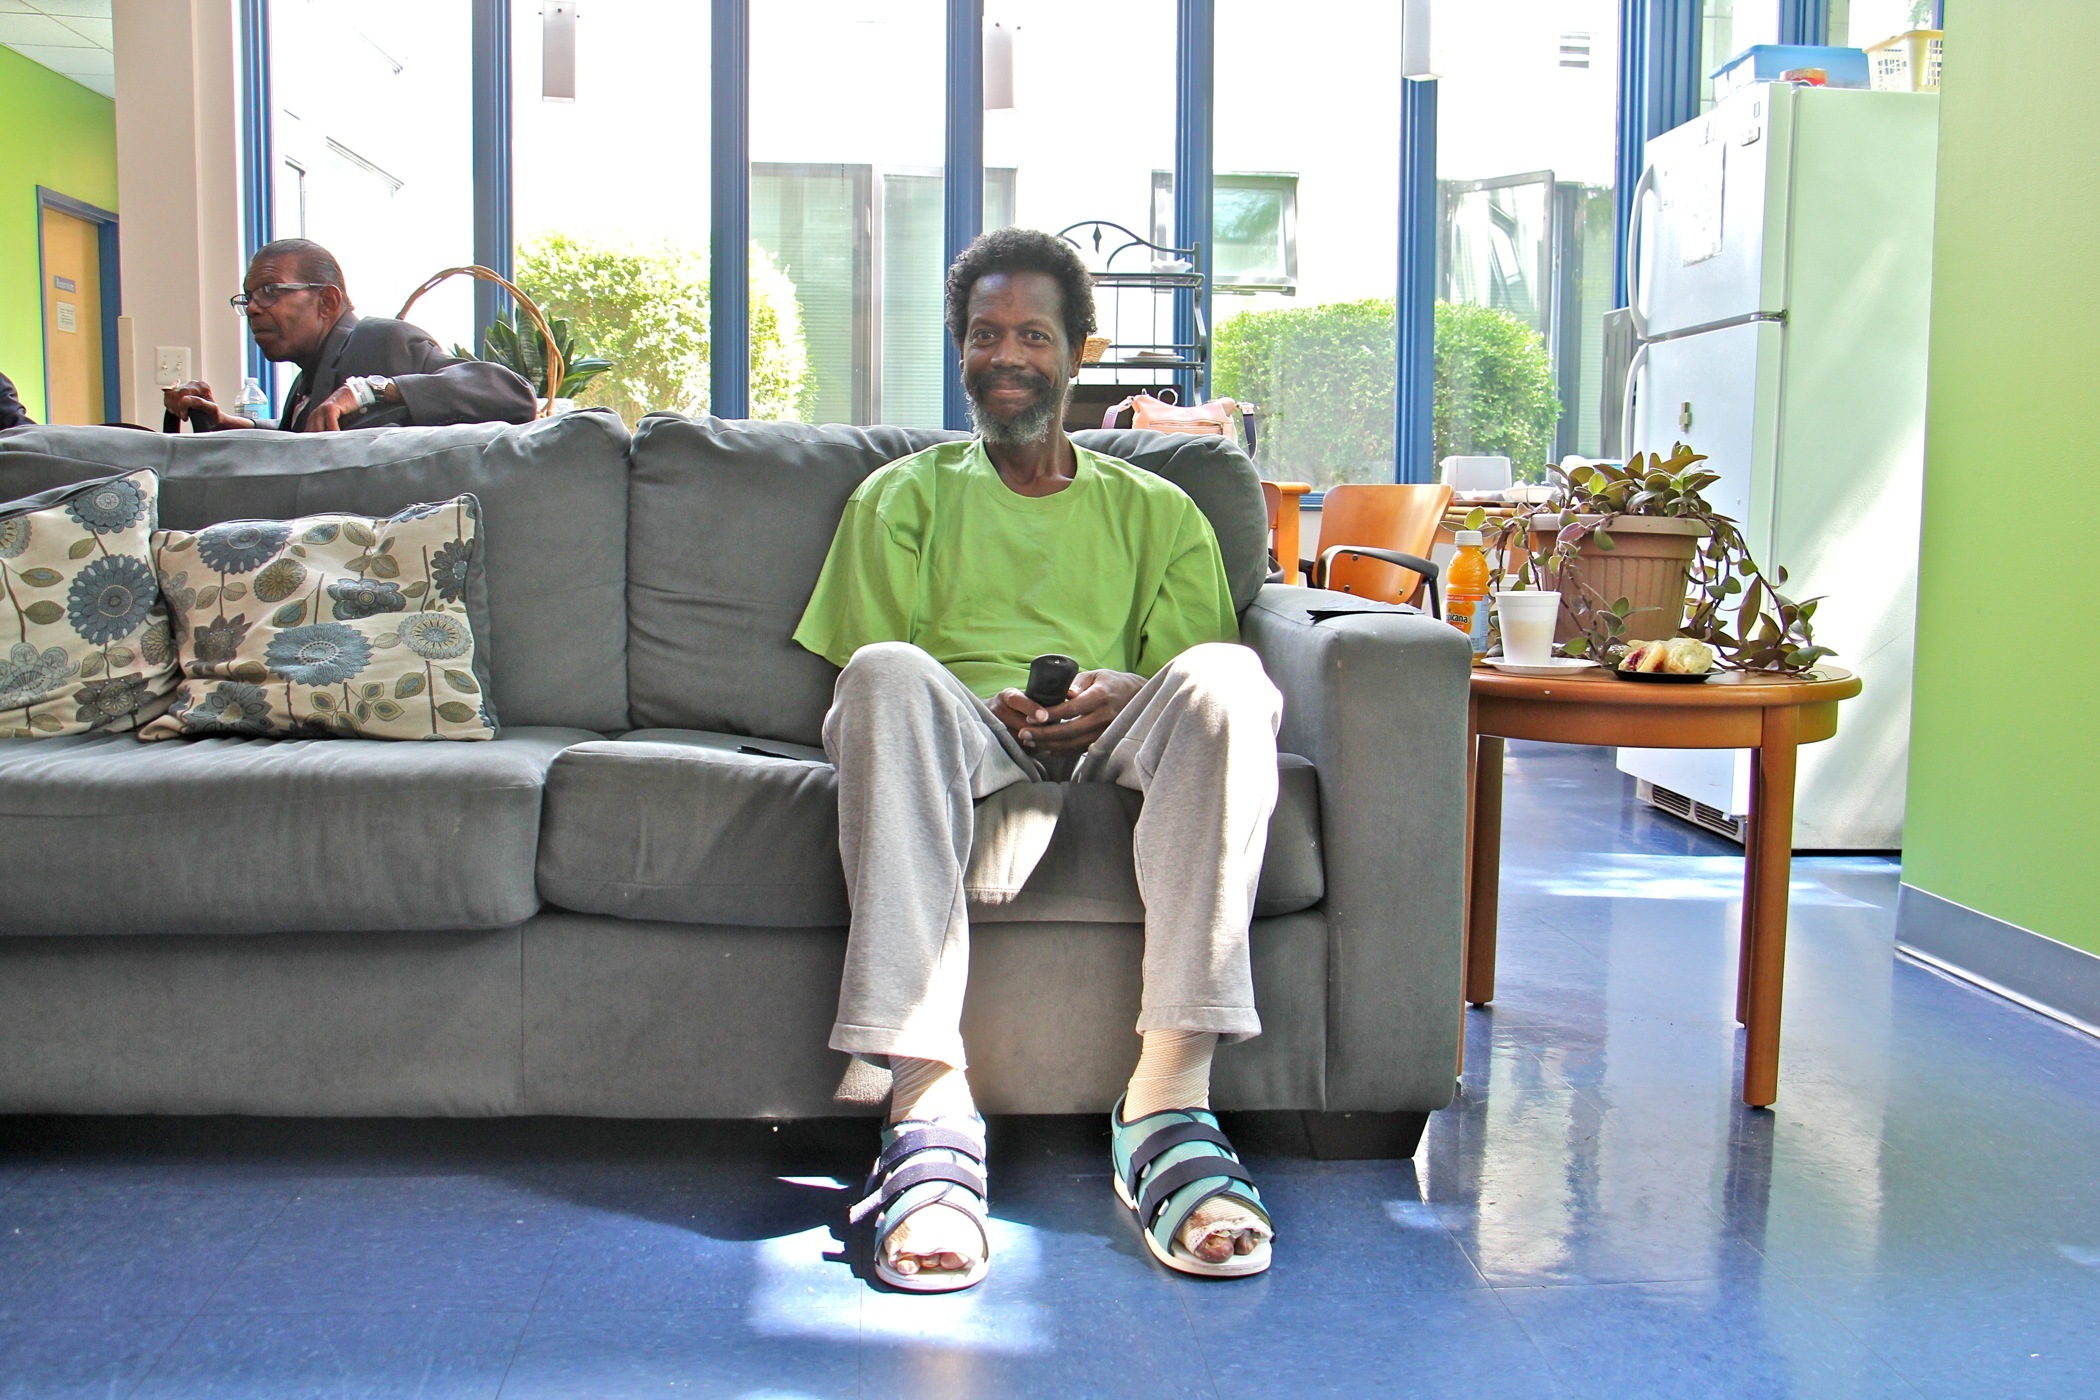 Rodney Lane, 57, relaxes in the common room at Serenity Court. After hospital treatment for frostbite and pneumonia, Lane was discharged to Serenity Court so he could get the continuing treatment he requires.